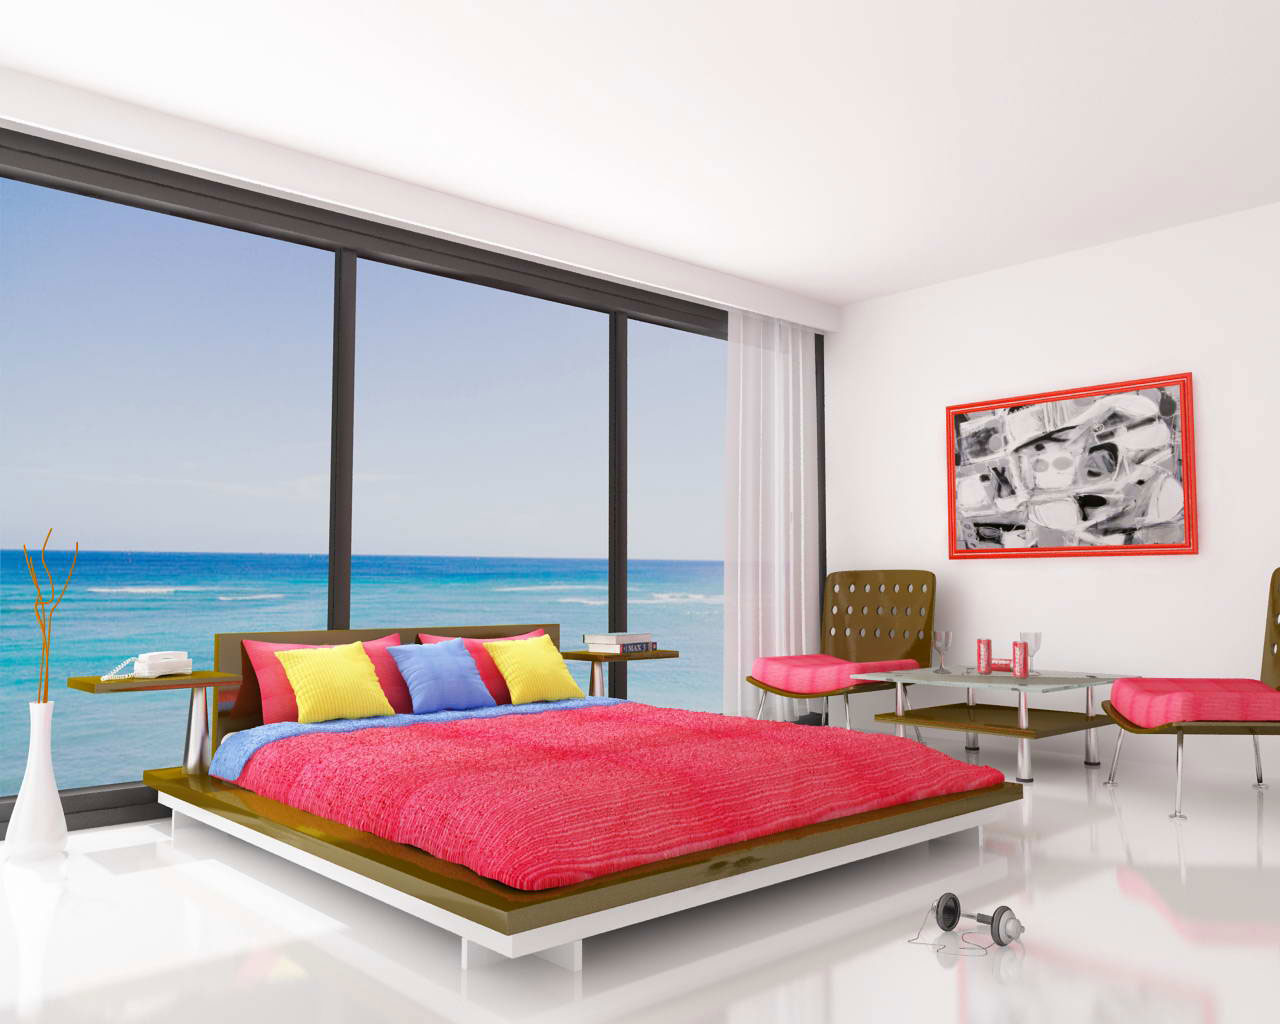 design interior trend bedroom design ocean